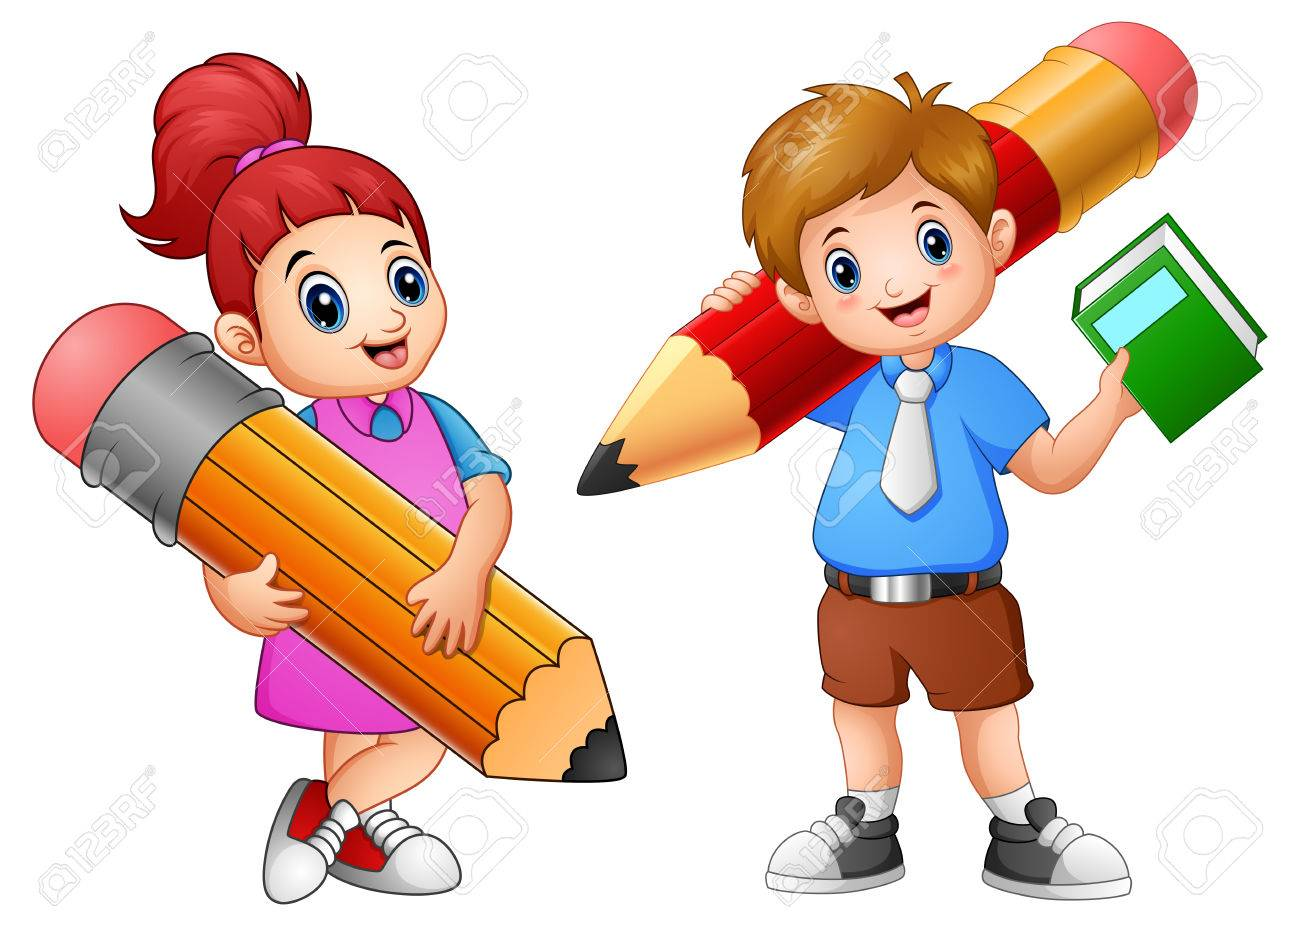 Cartoon Childrens Holding A Pencil Stock Photo Picture And Royalty Free Image Image 81553016